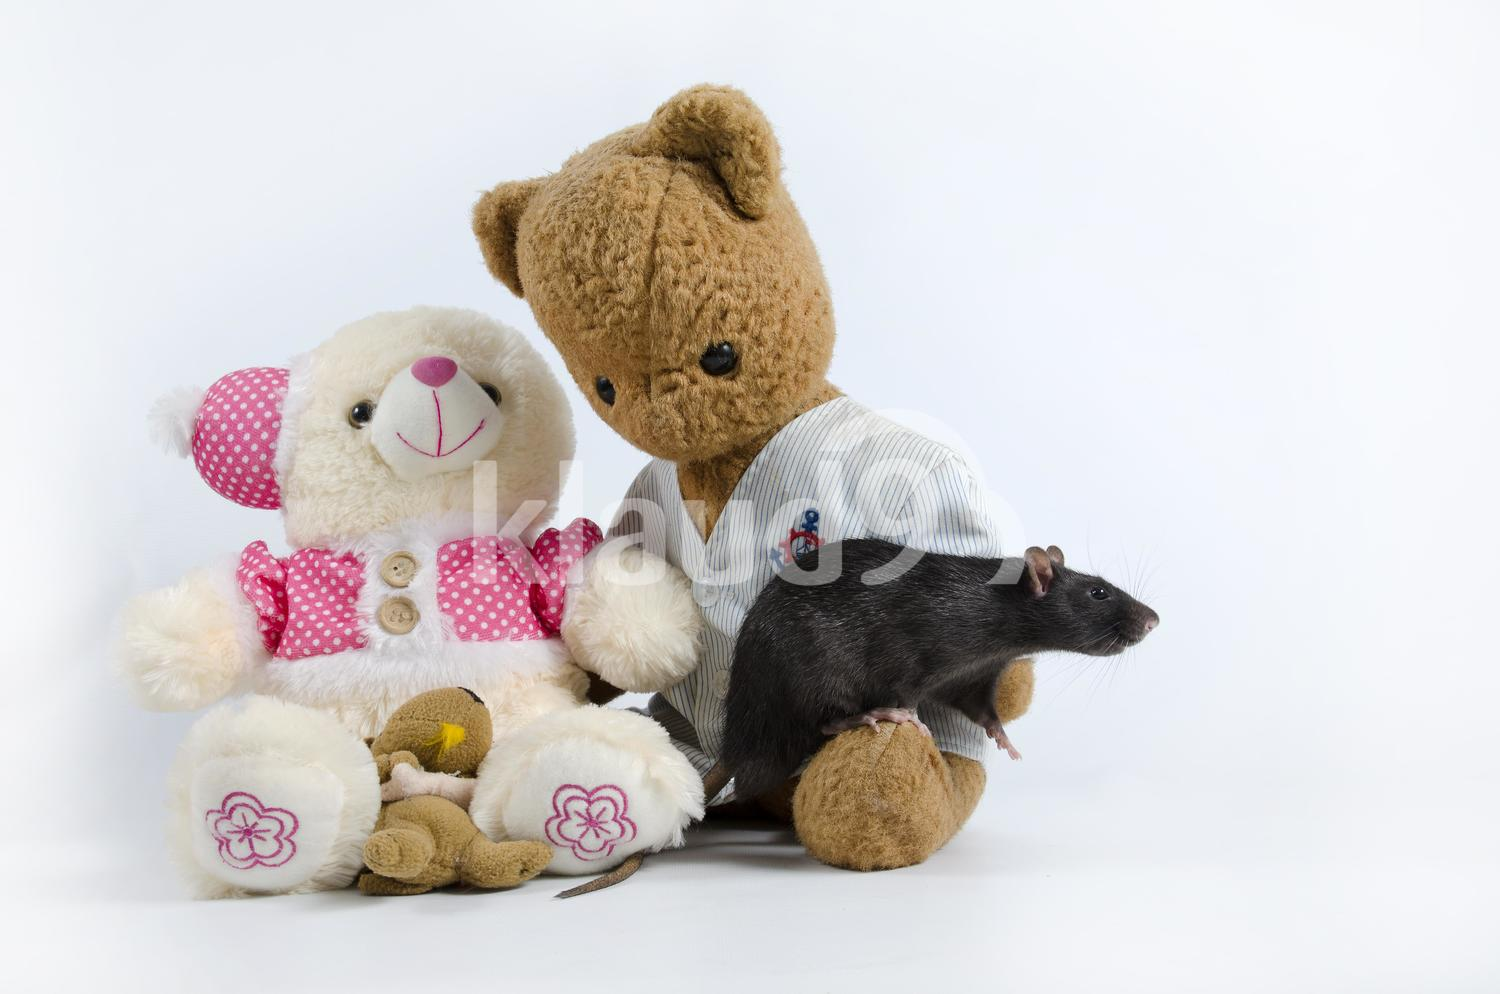 Black rat and soft toys